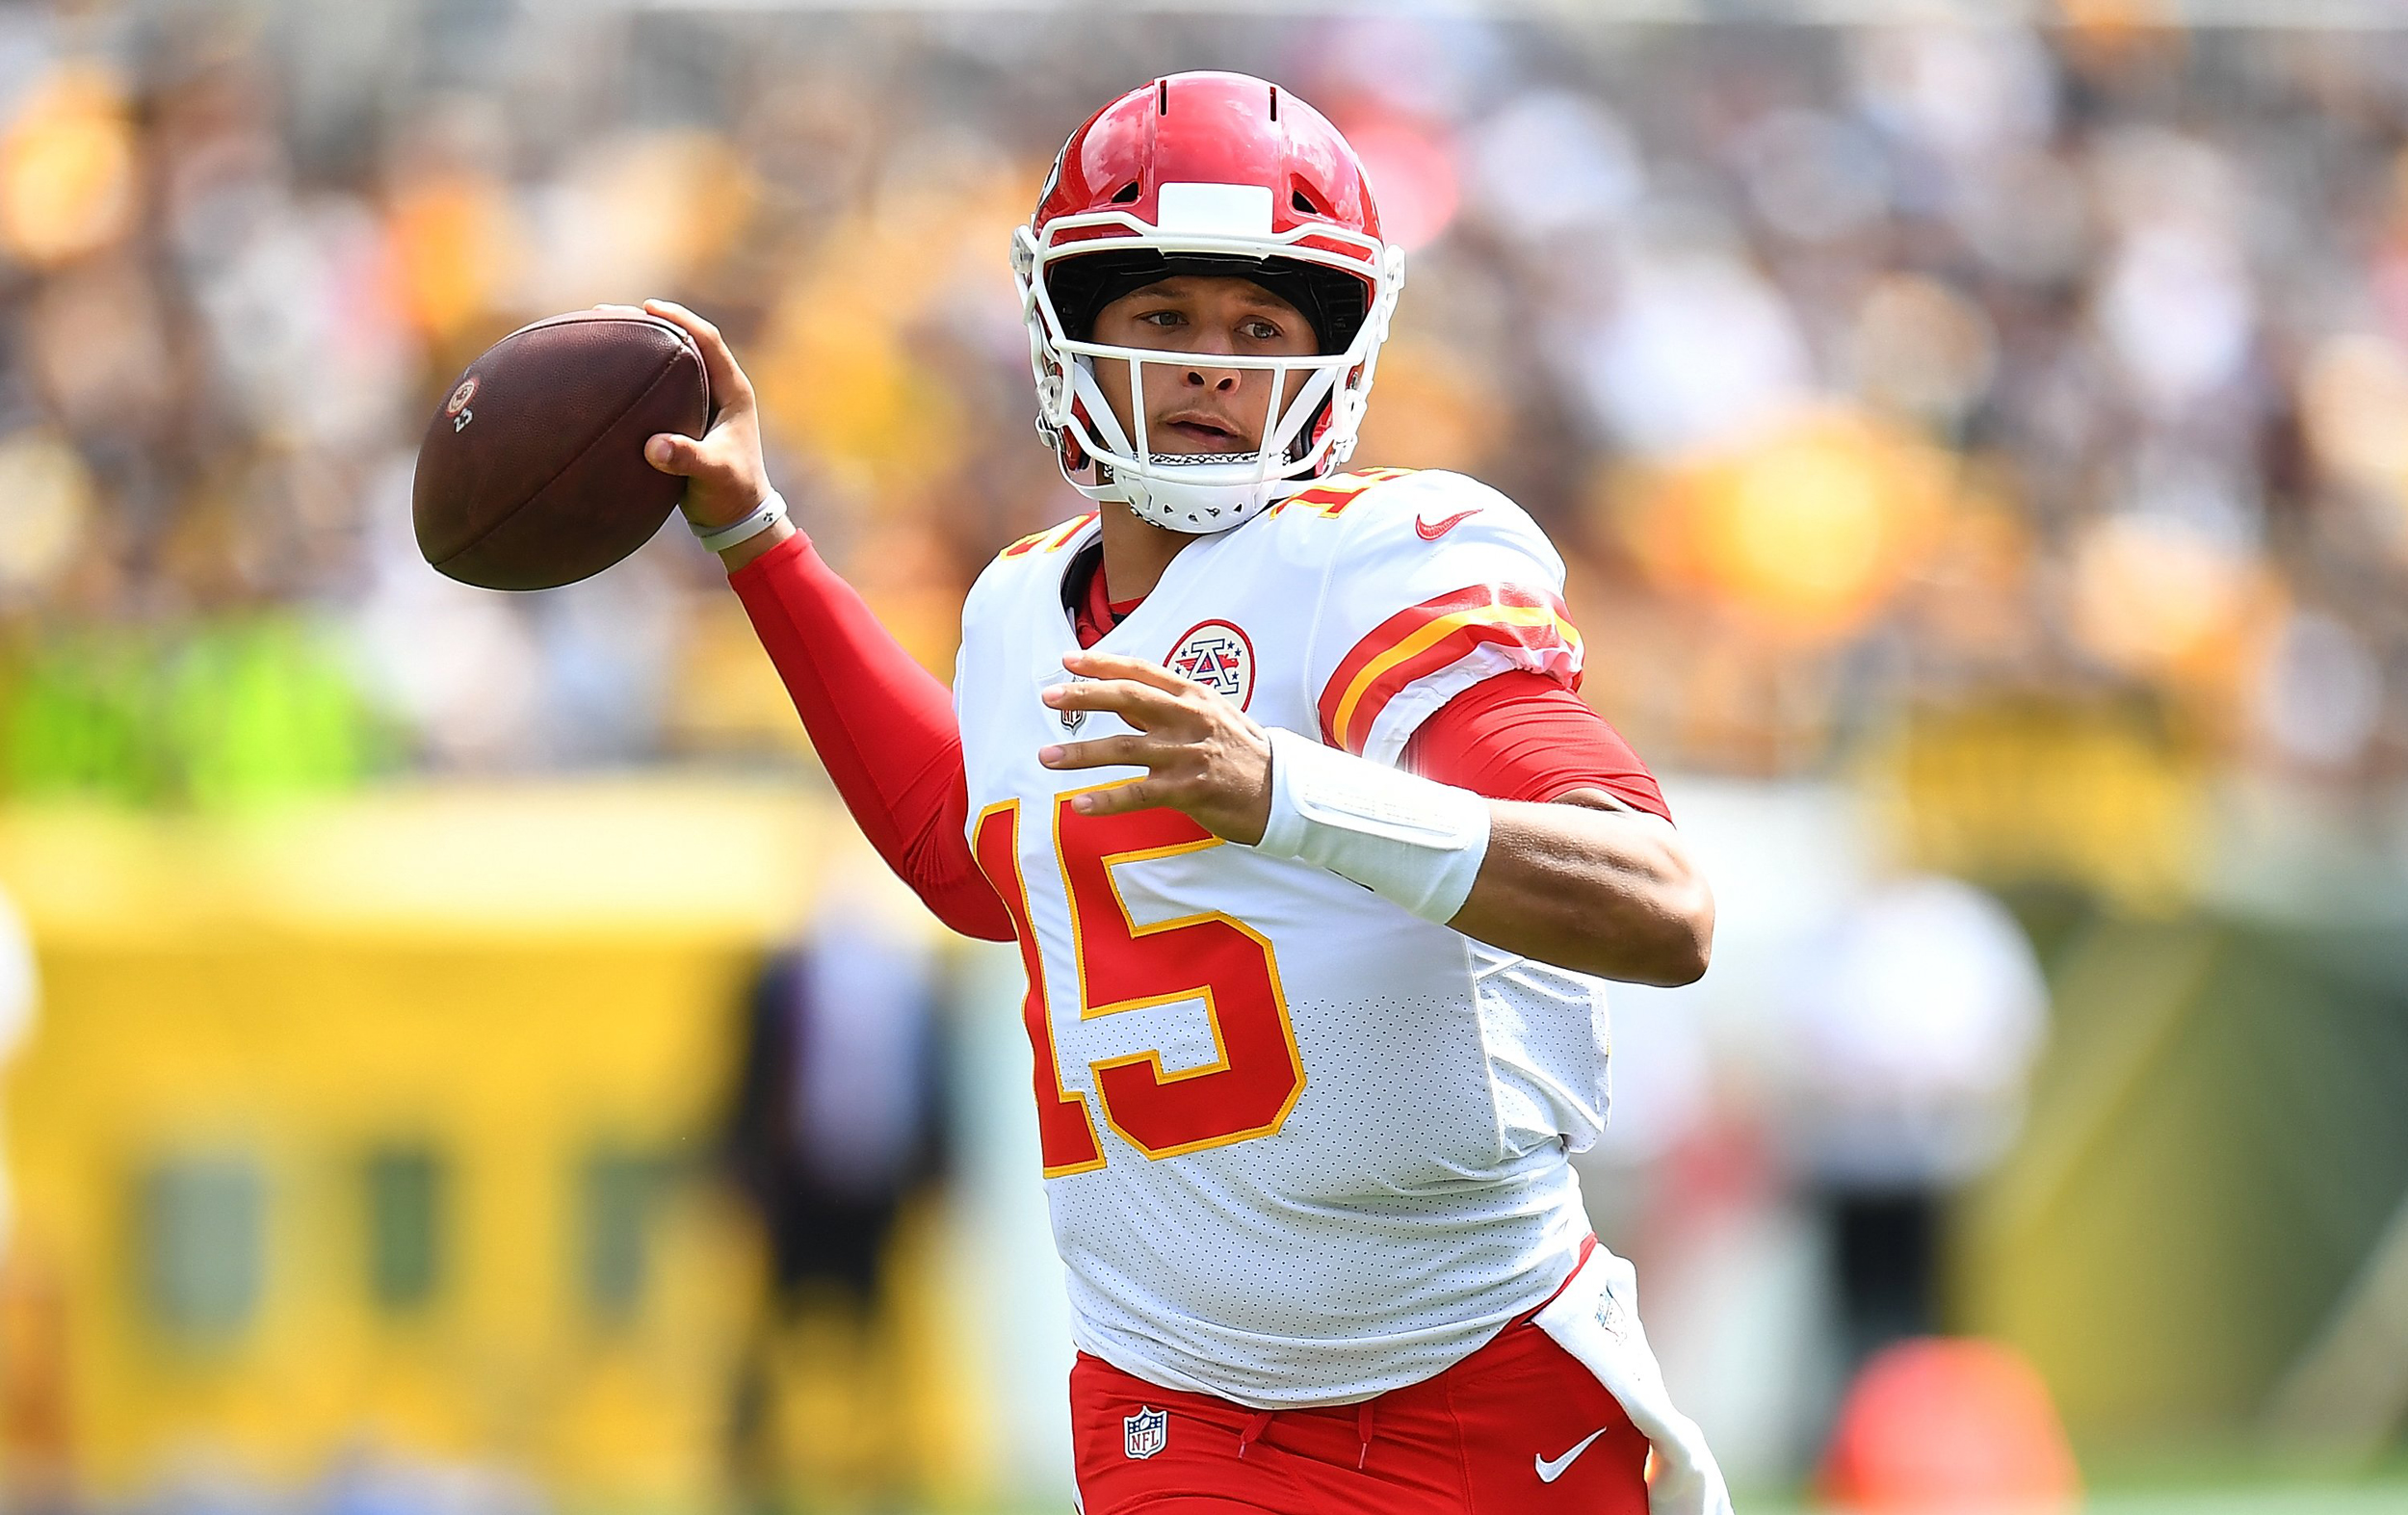 Patrick Mahomes breaks NFL record for touchdown passes through 2 games